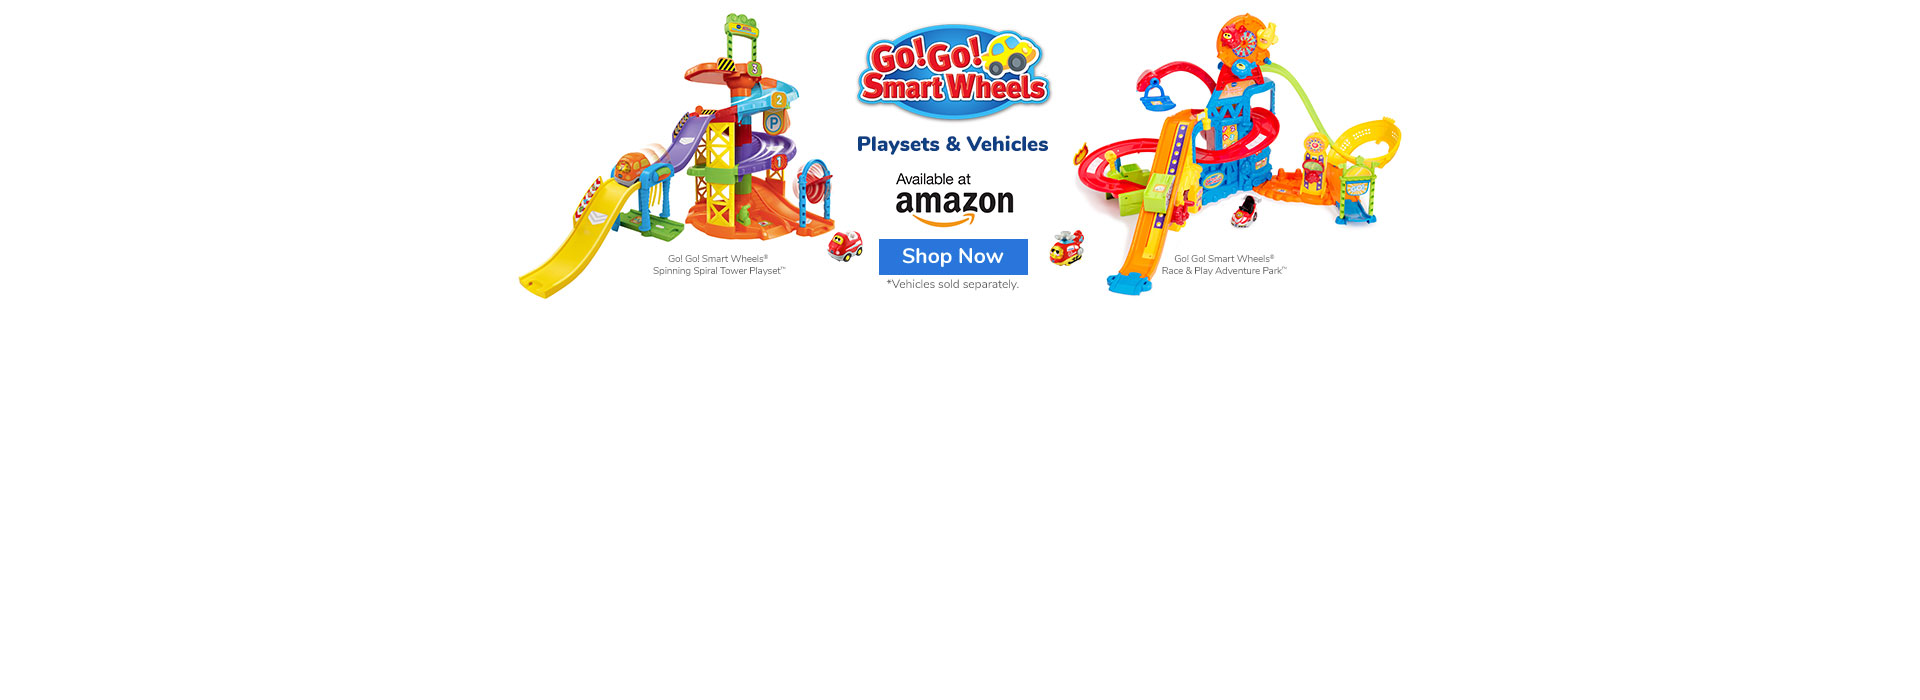 Go! Go! Smart Wheels Playsets and Vehicles